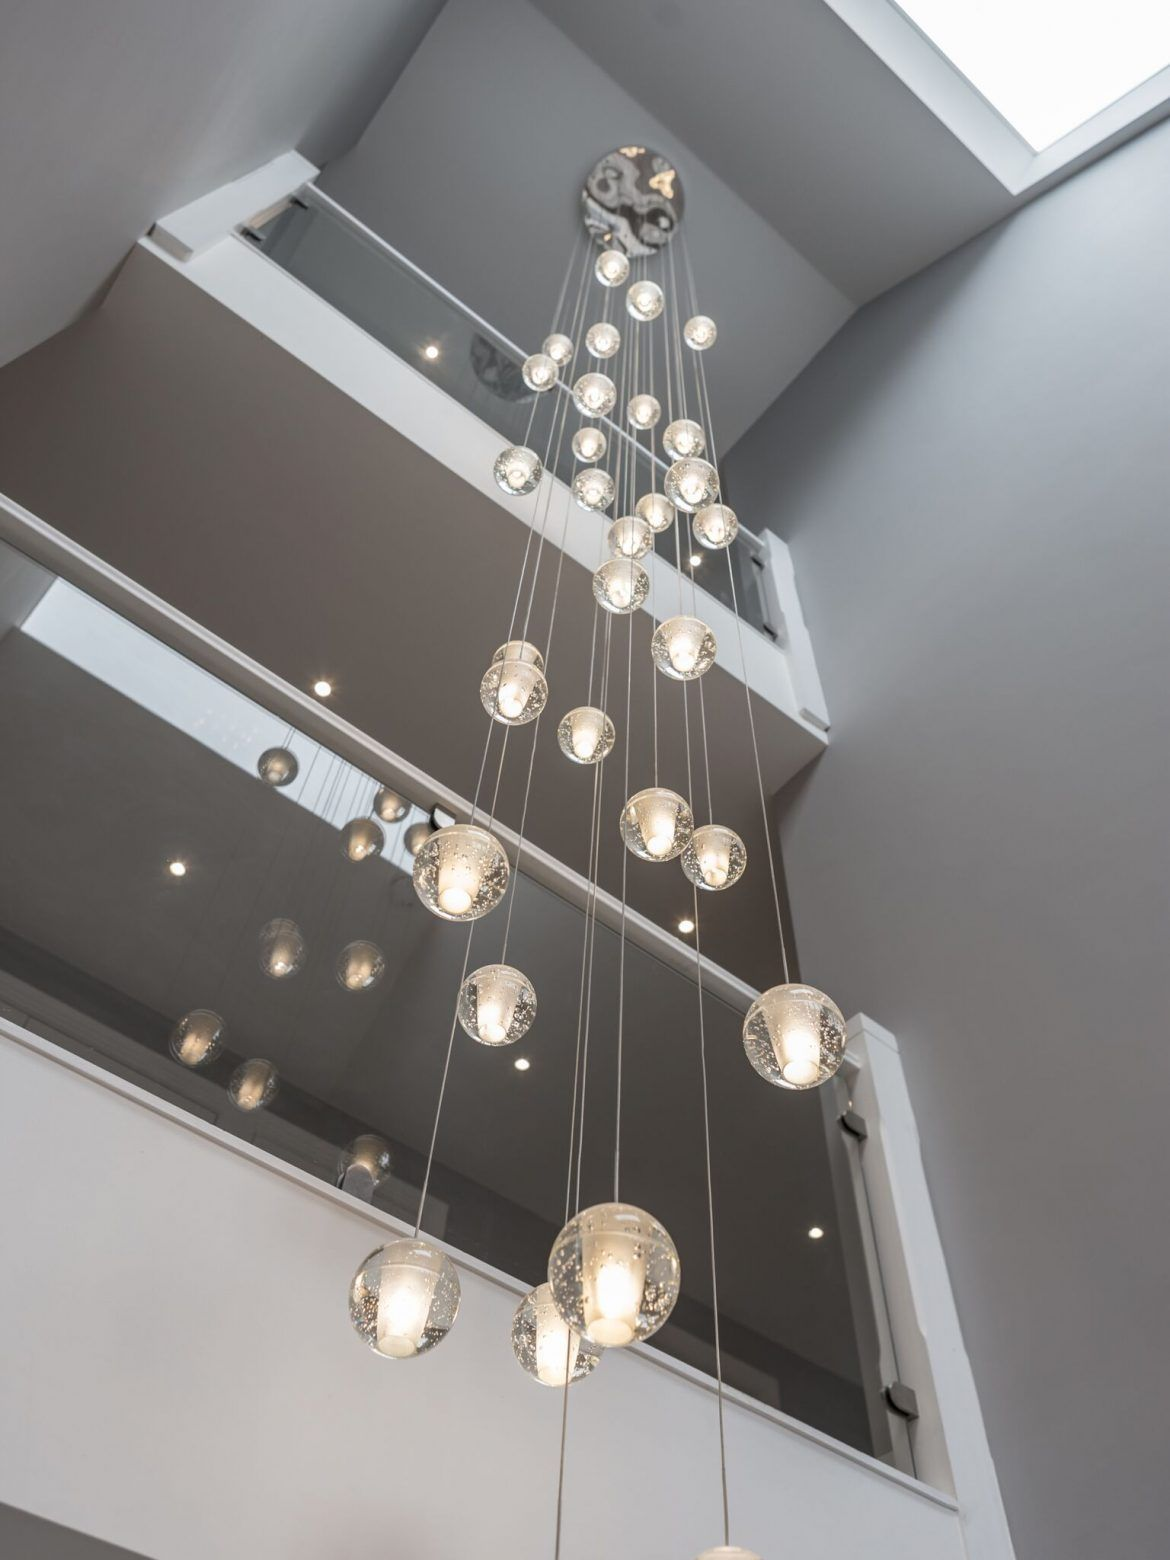 Air Bubble On Display In Our Showroom Lightstyle Interiors Vaulted Ceiling Lighting Modern Glass Chandeliers Glass Chandelier